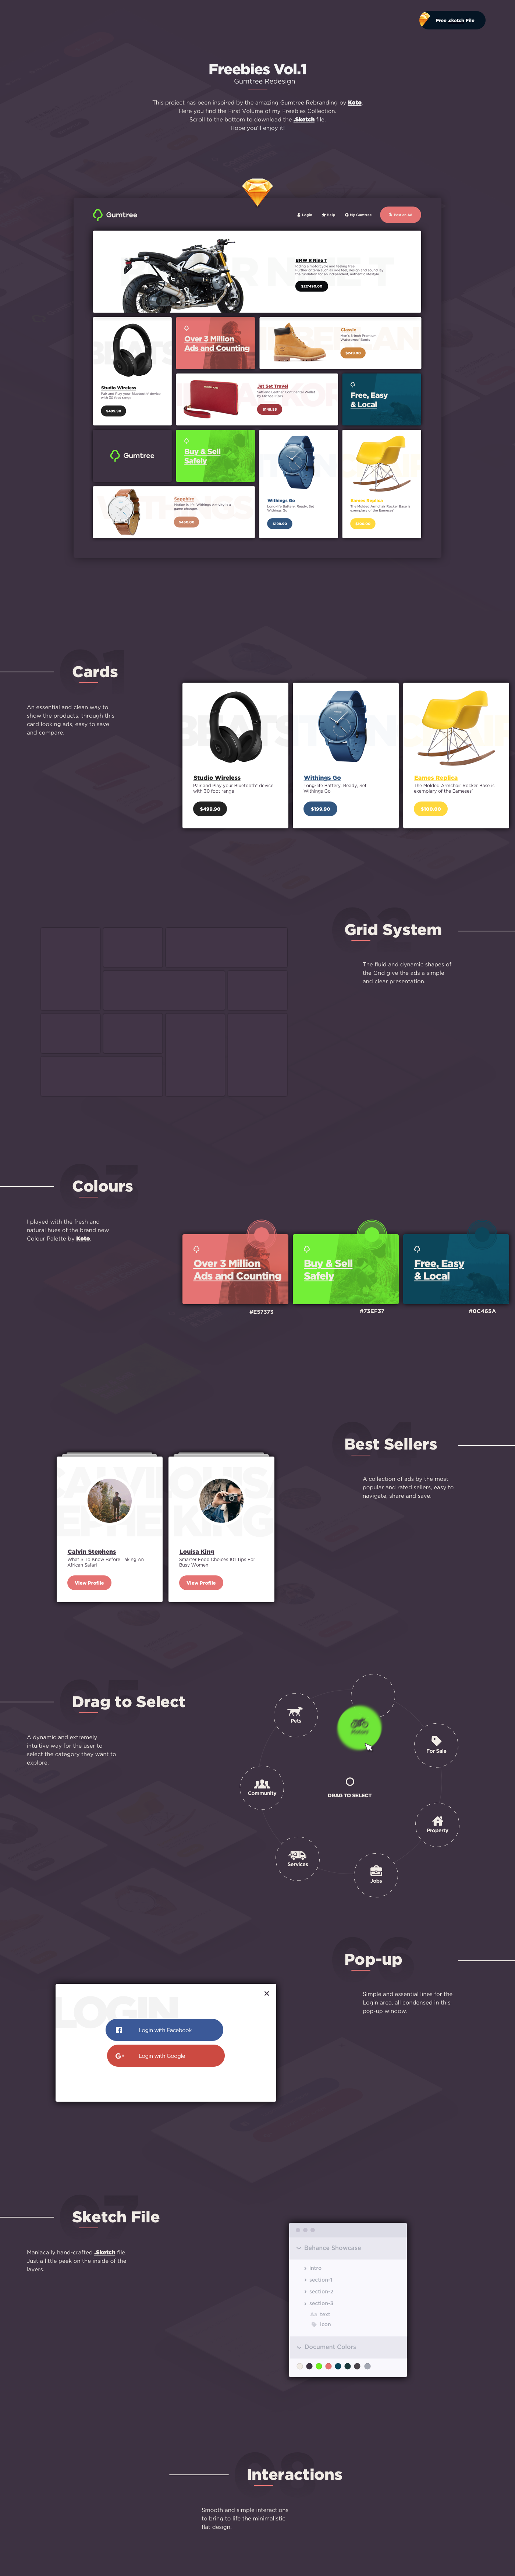 UI ux freebie freebies redesign Webdesign design flat minimal card cards gumtree Website new cool